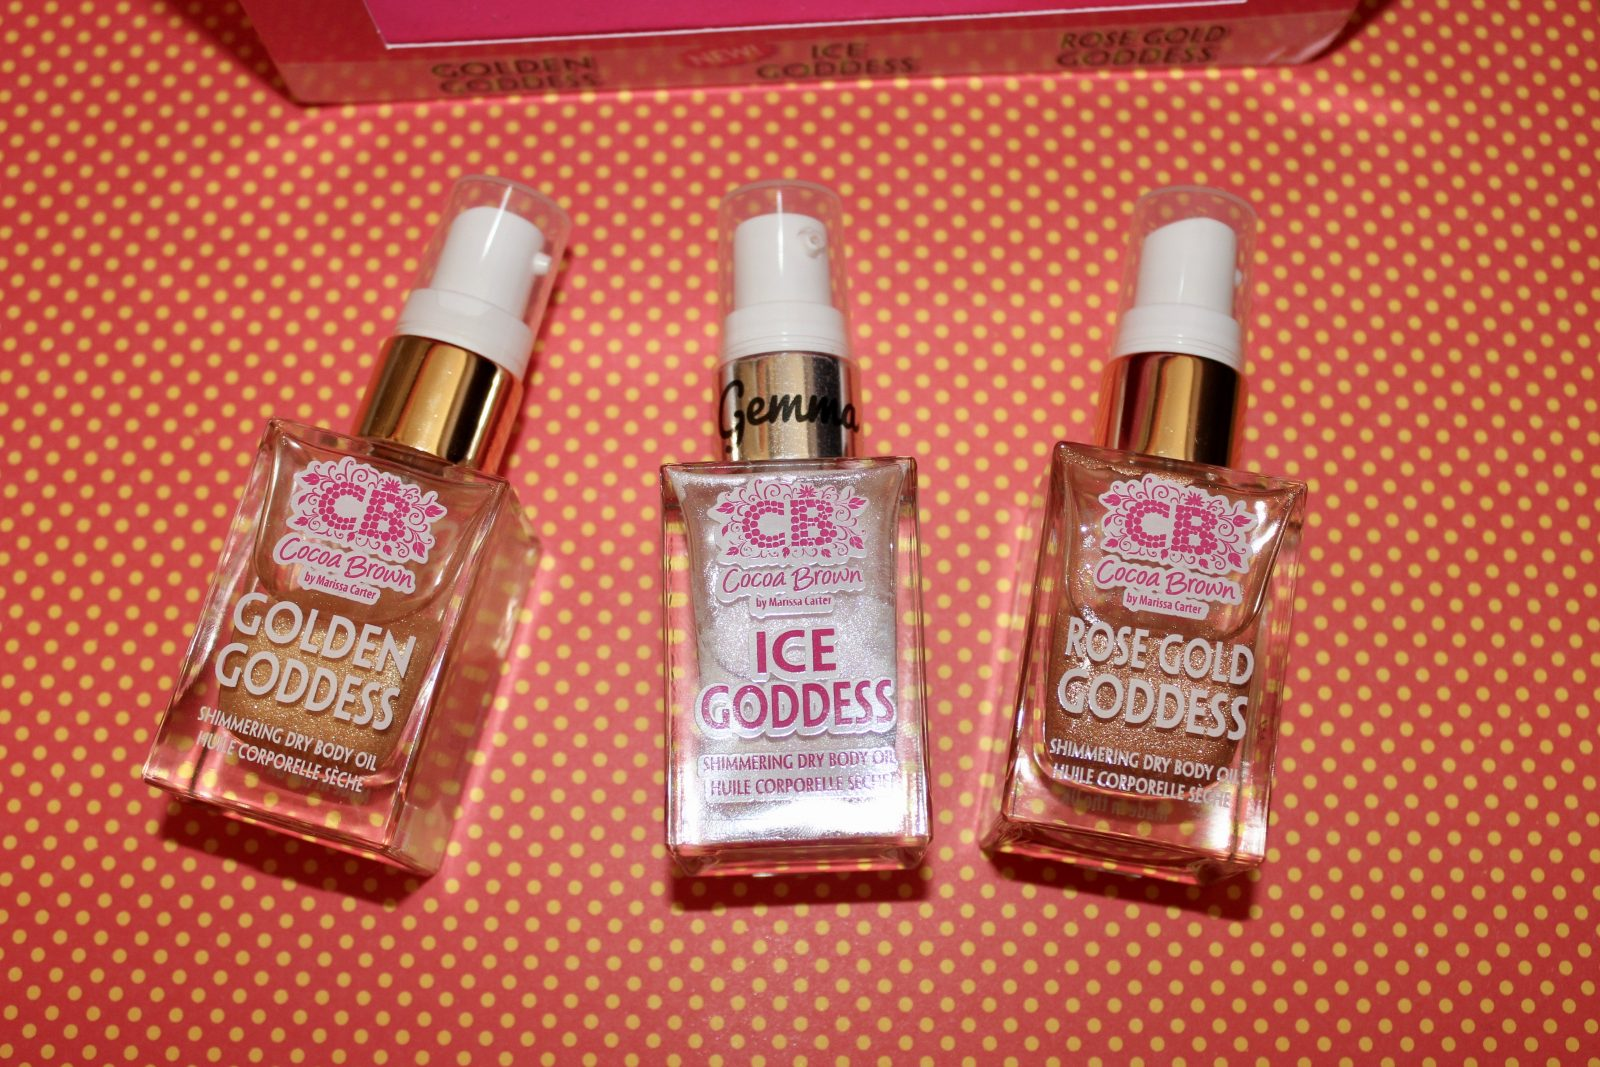 Cocoa Brown Ice Goddess Shimmering Dry Body Oil